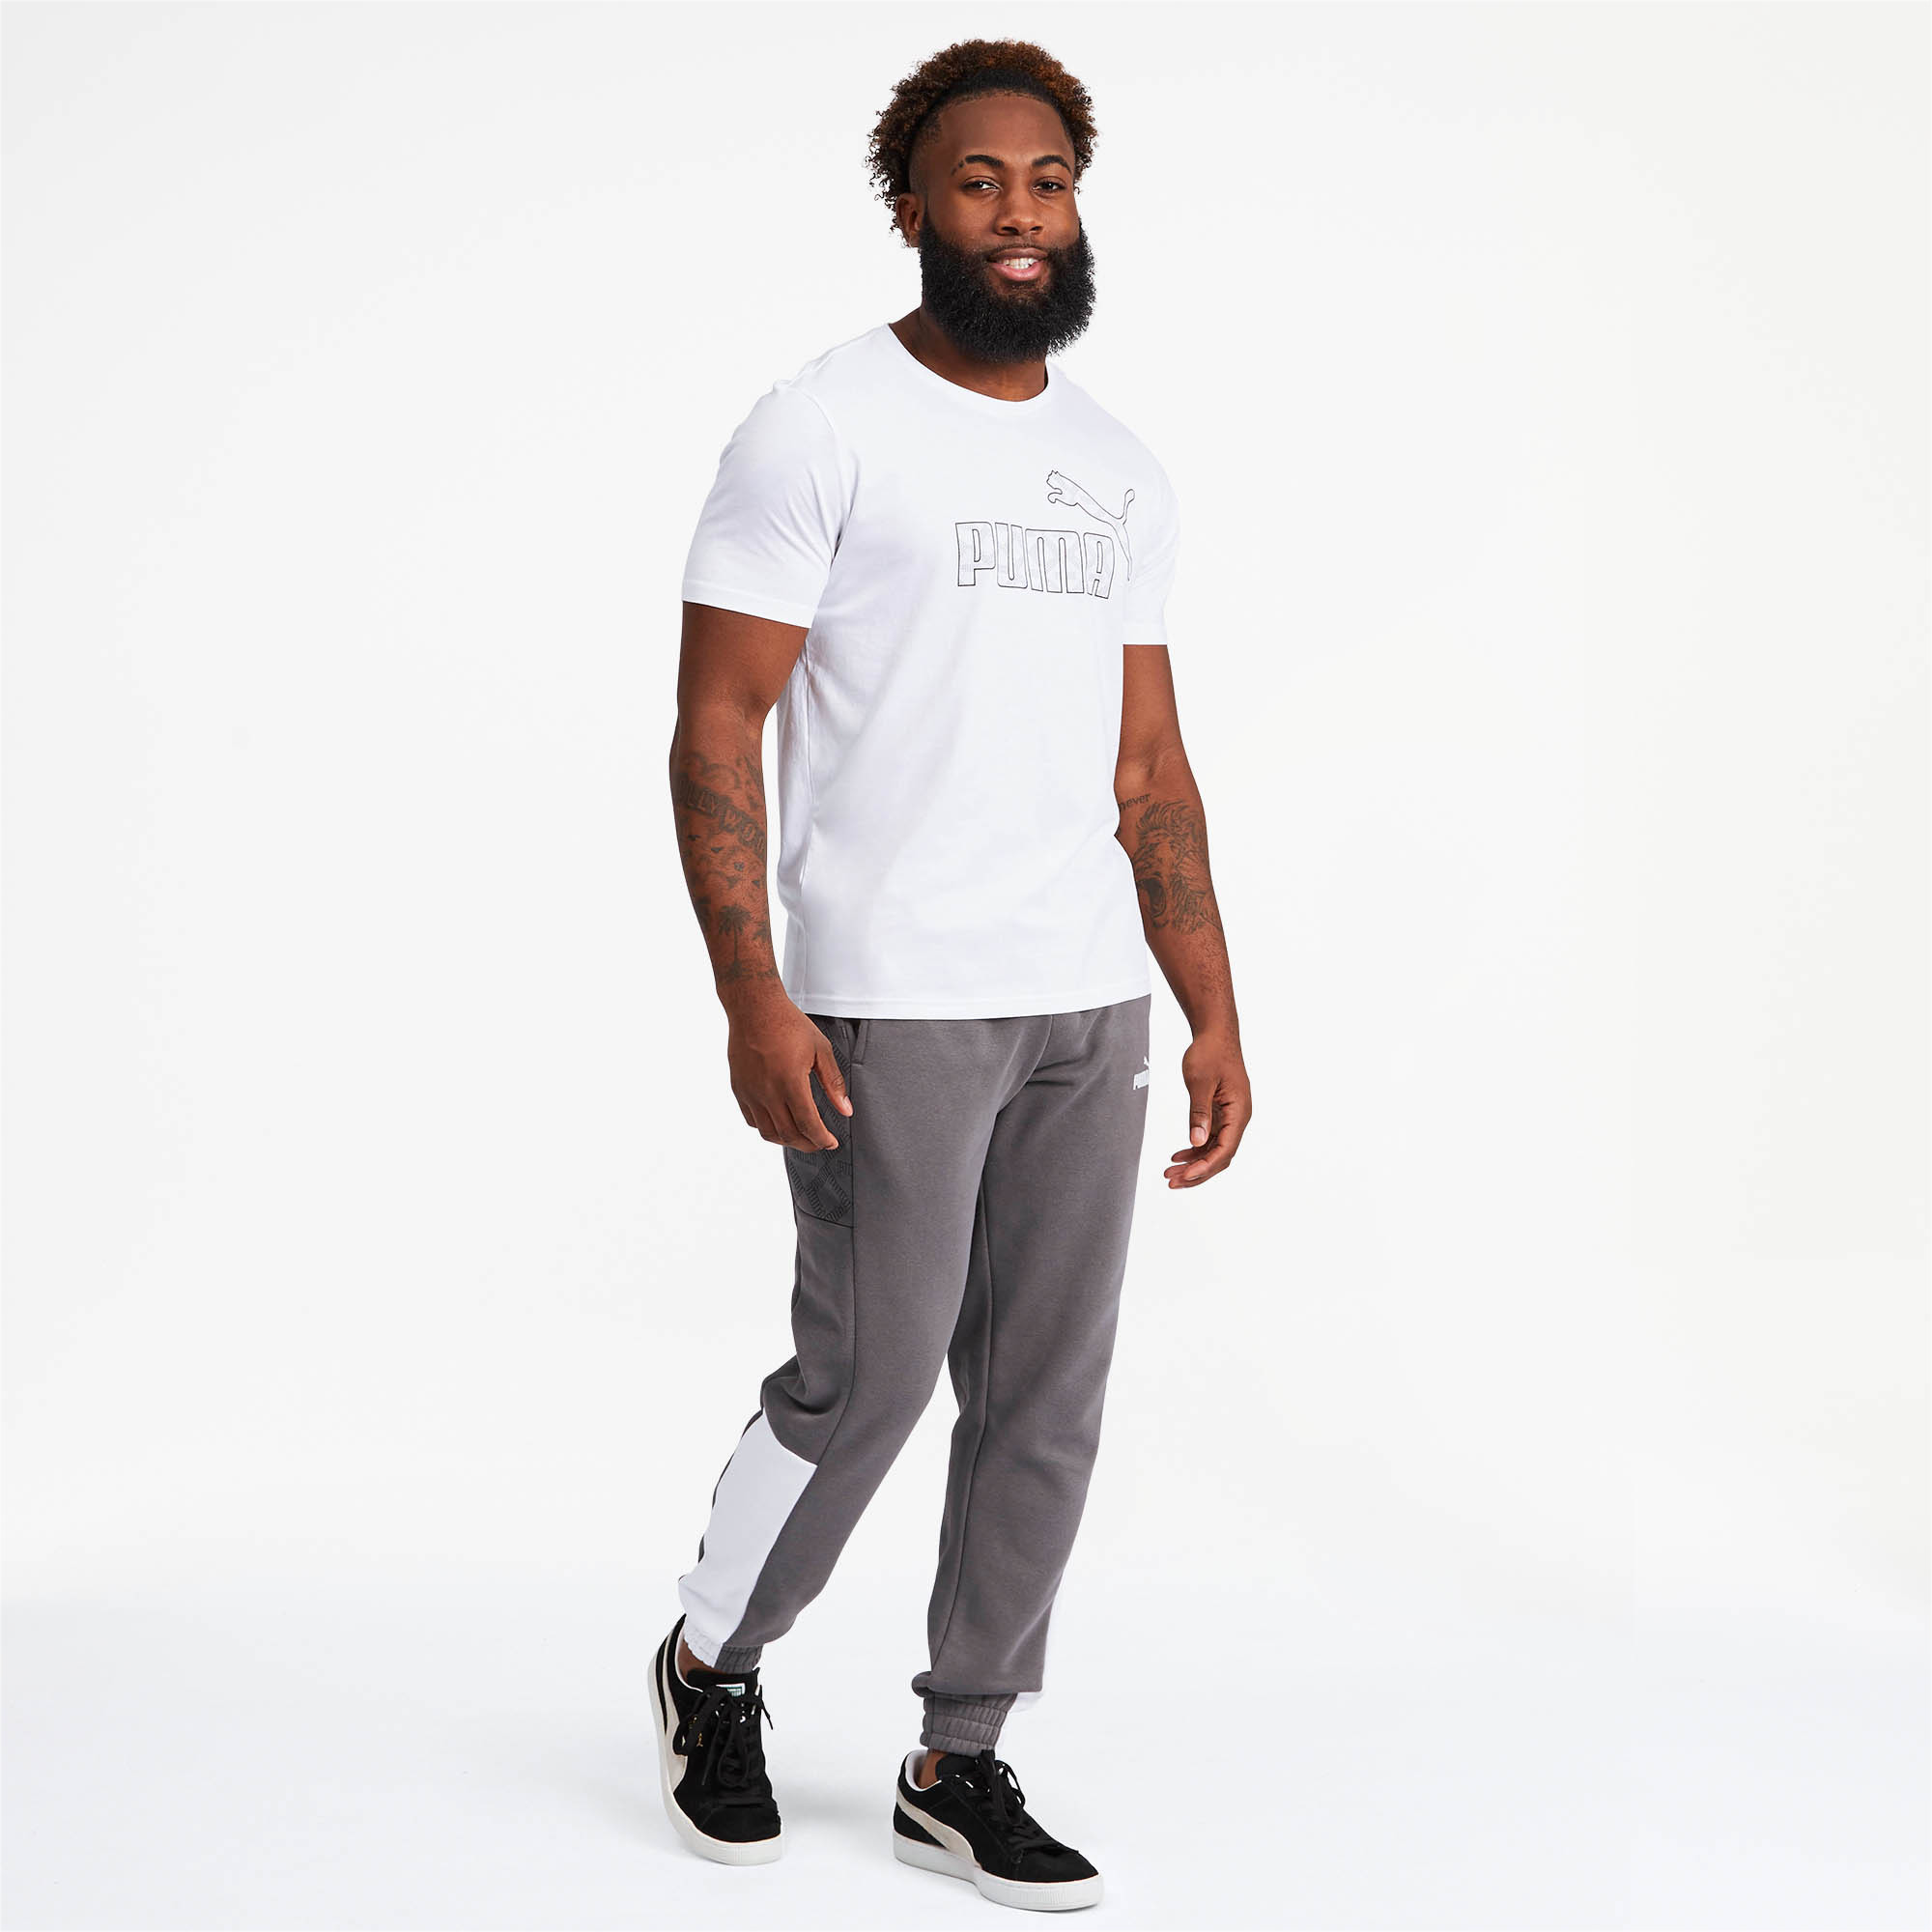 PUMA-Logo-AOP-Pack-Men-039-s-Graphic-Tee-Men-Tee-Basics thumbnail 11